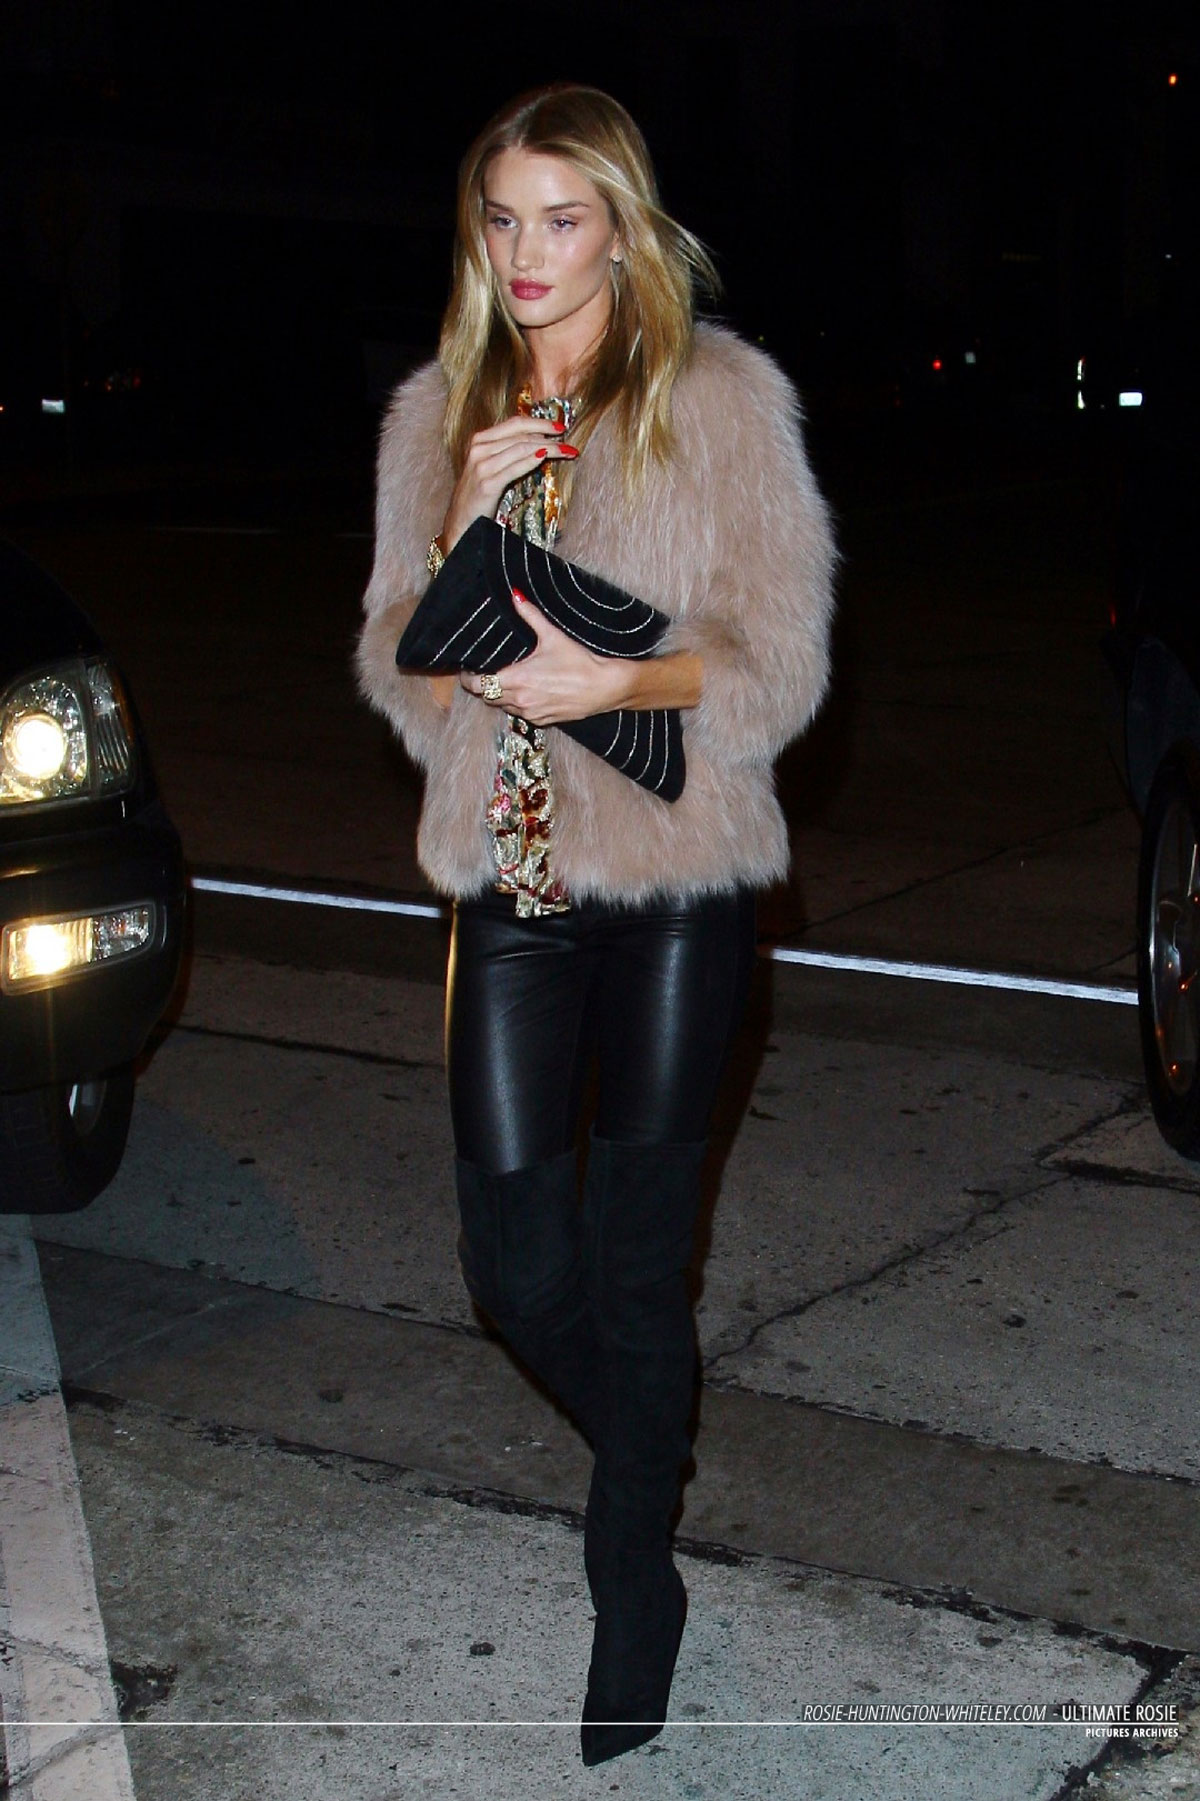 Rosie Huntington Whiteley heading to Craig restaurant for dinner